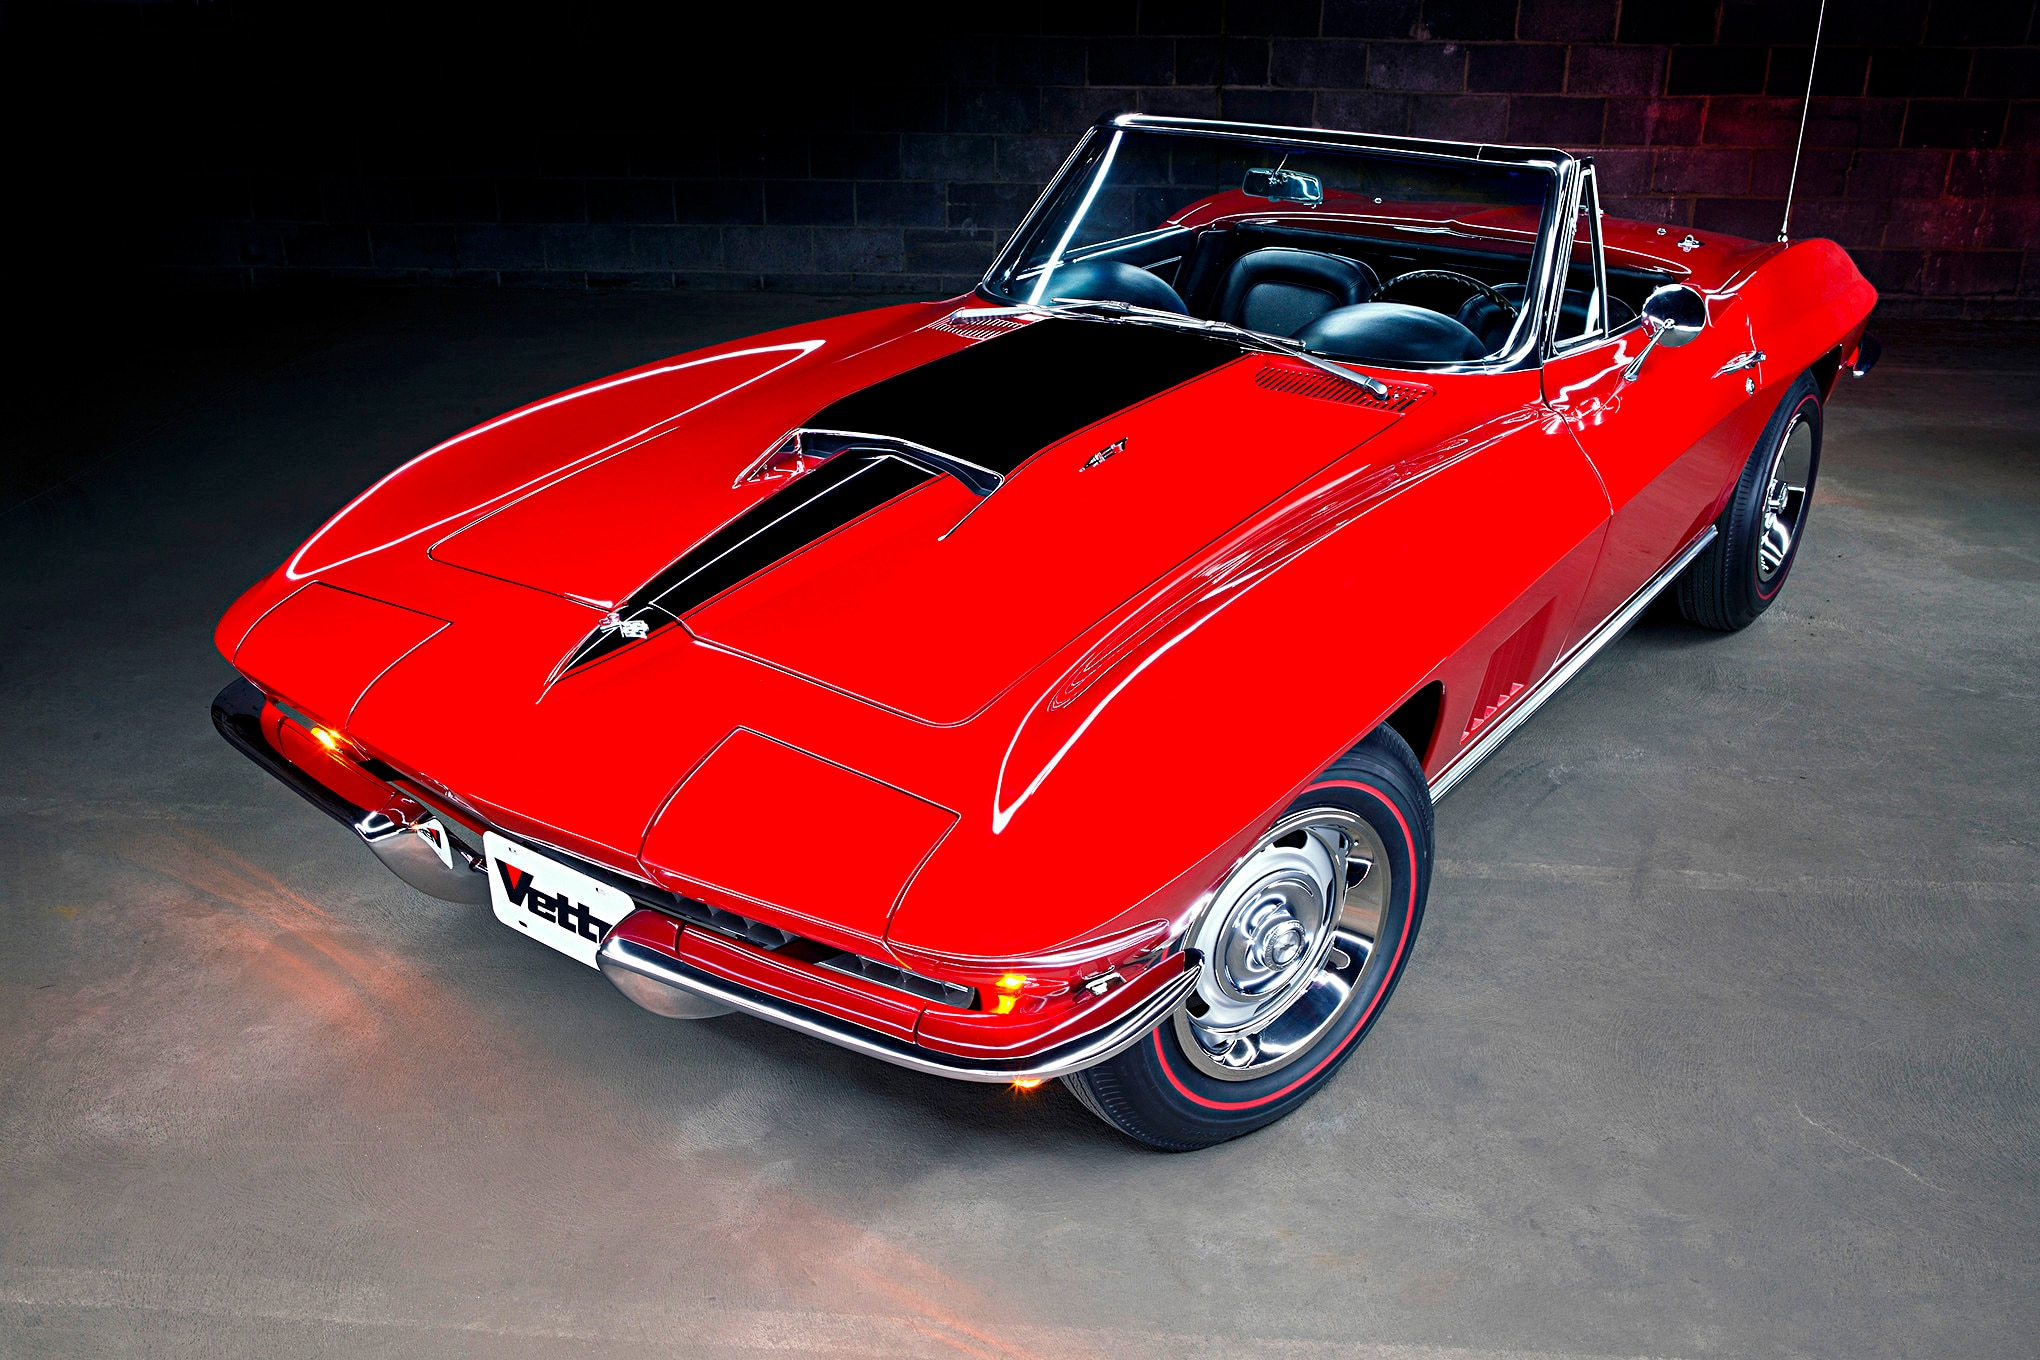 This Concours-Ready 1967 Chevrolet Corvette 427 Convertible Packs a